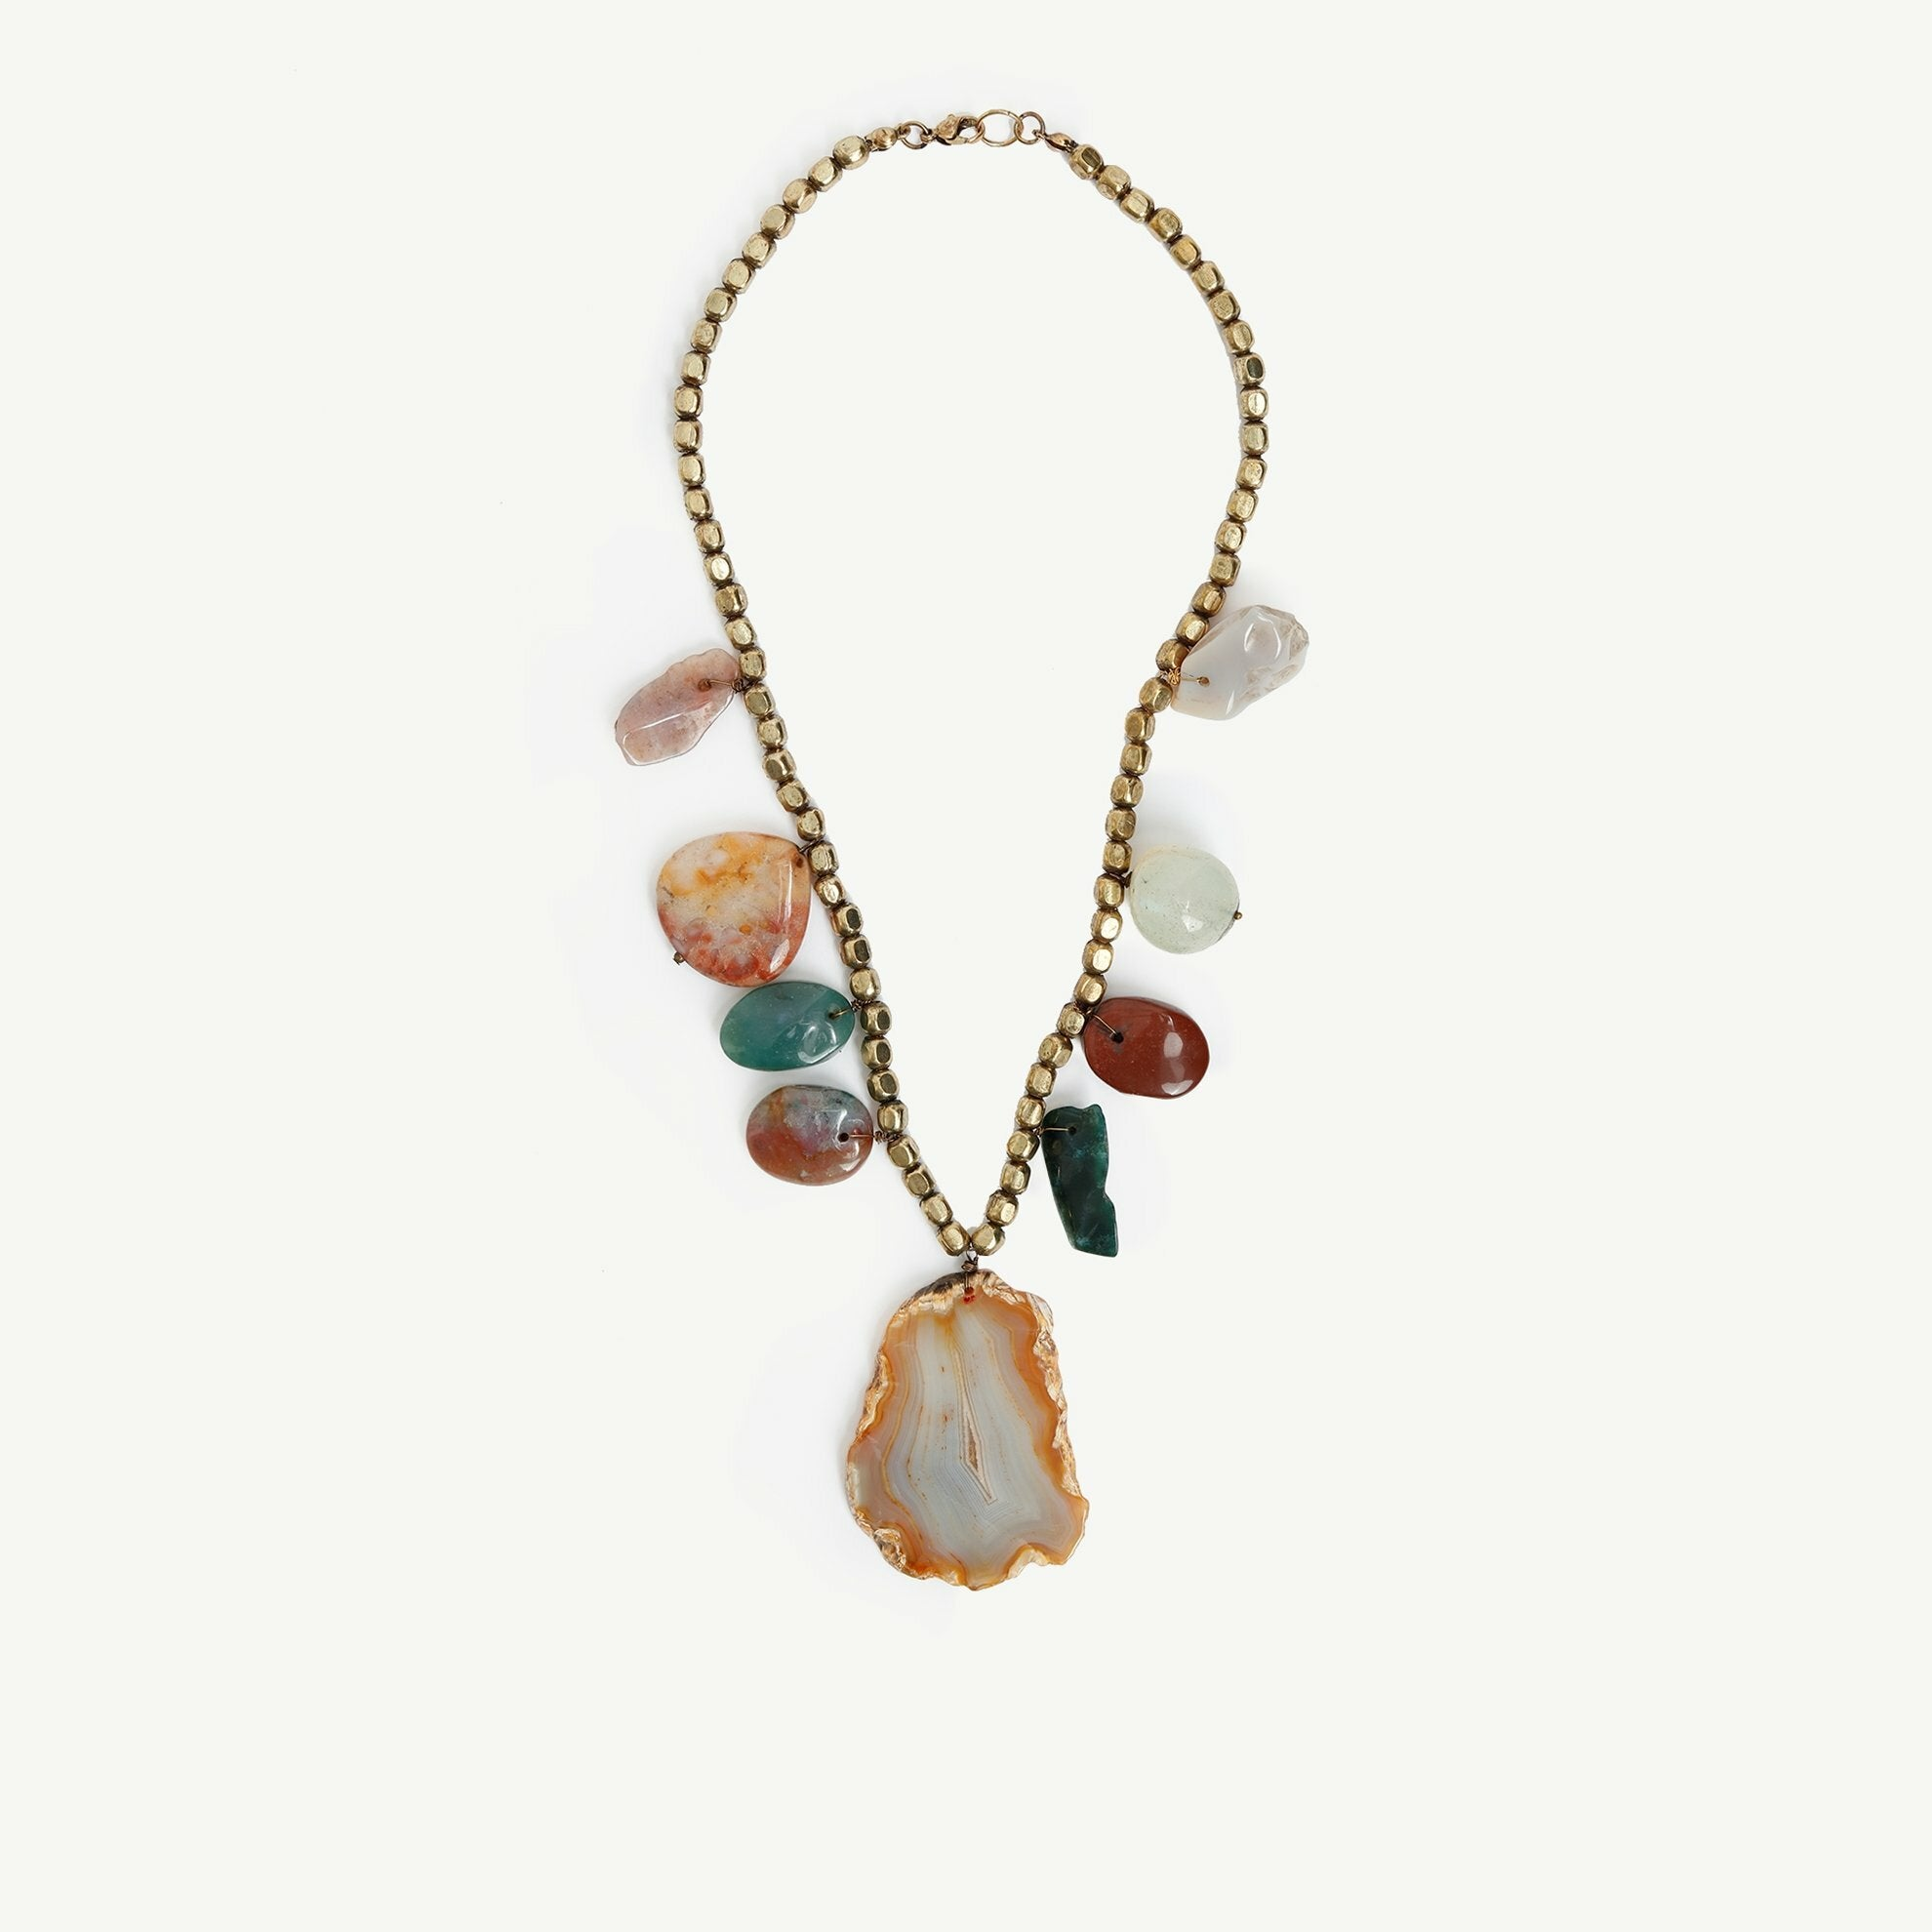 Completel look of natural stone necklace.